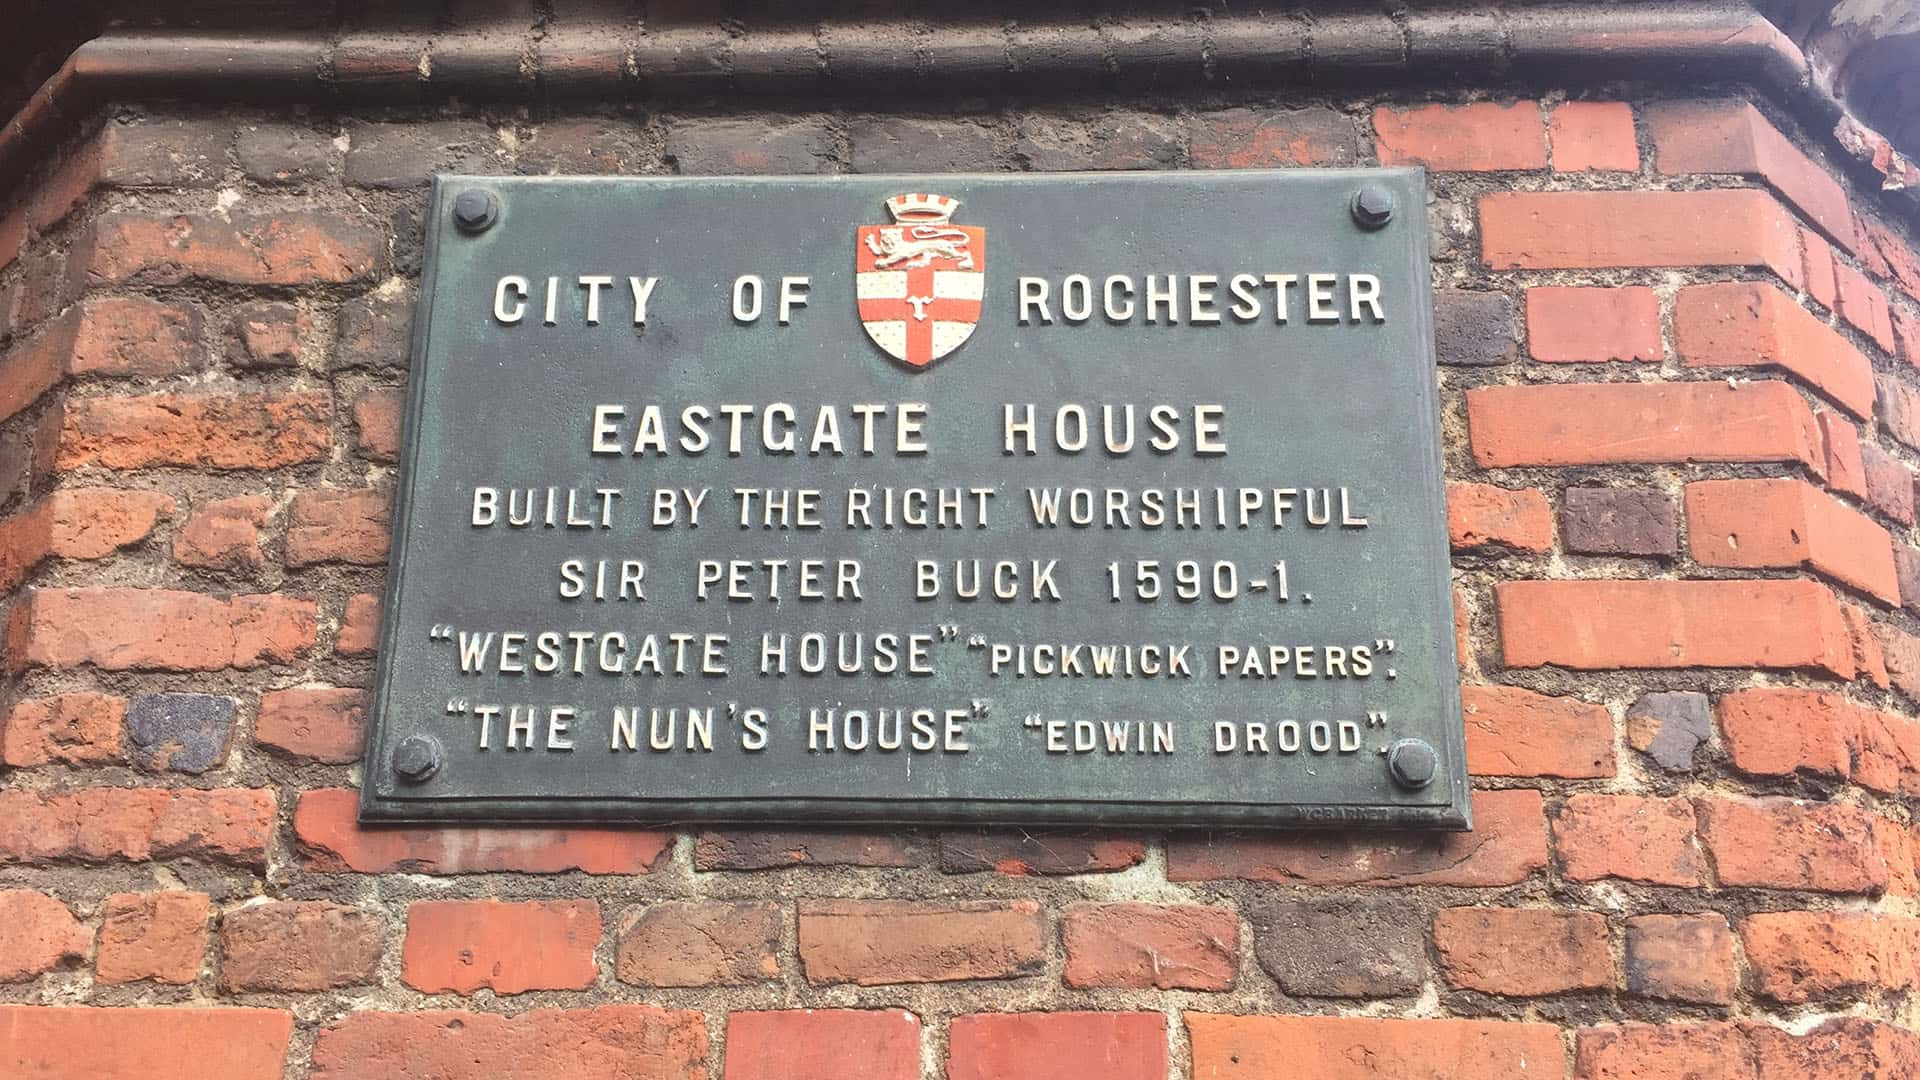 Eastgate House – City of Rochester